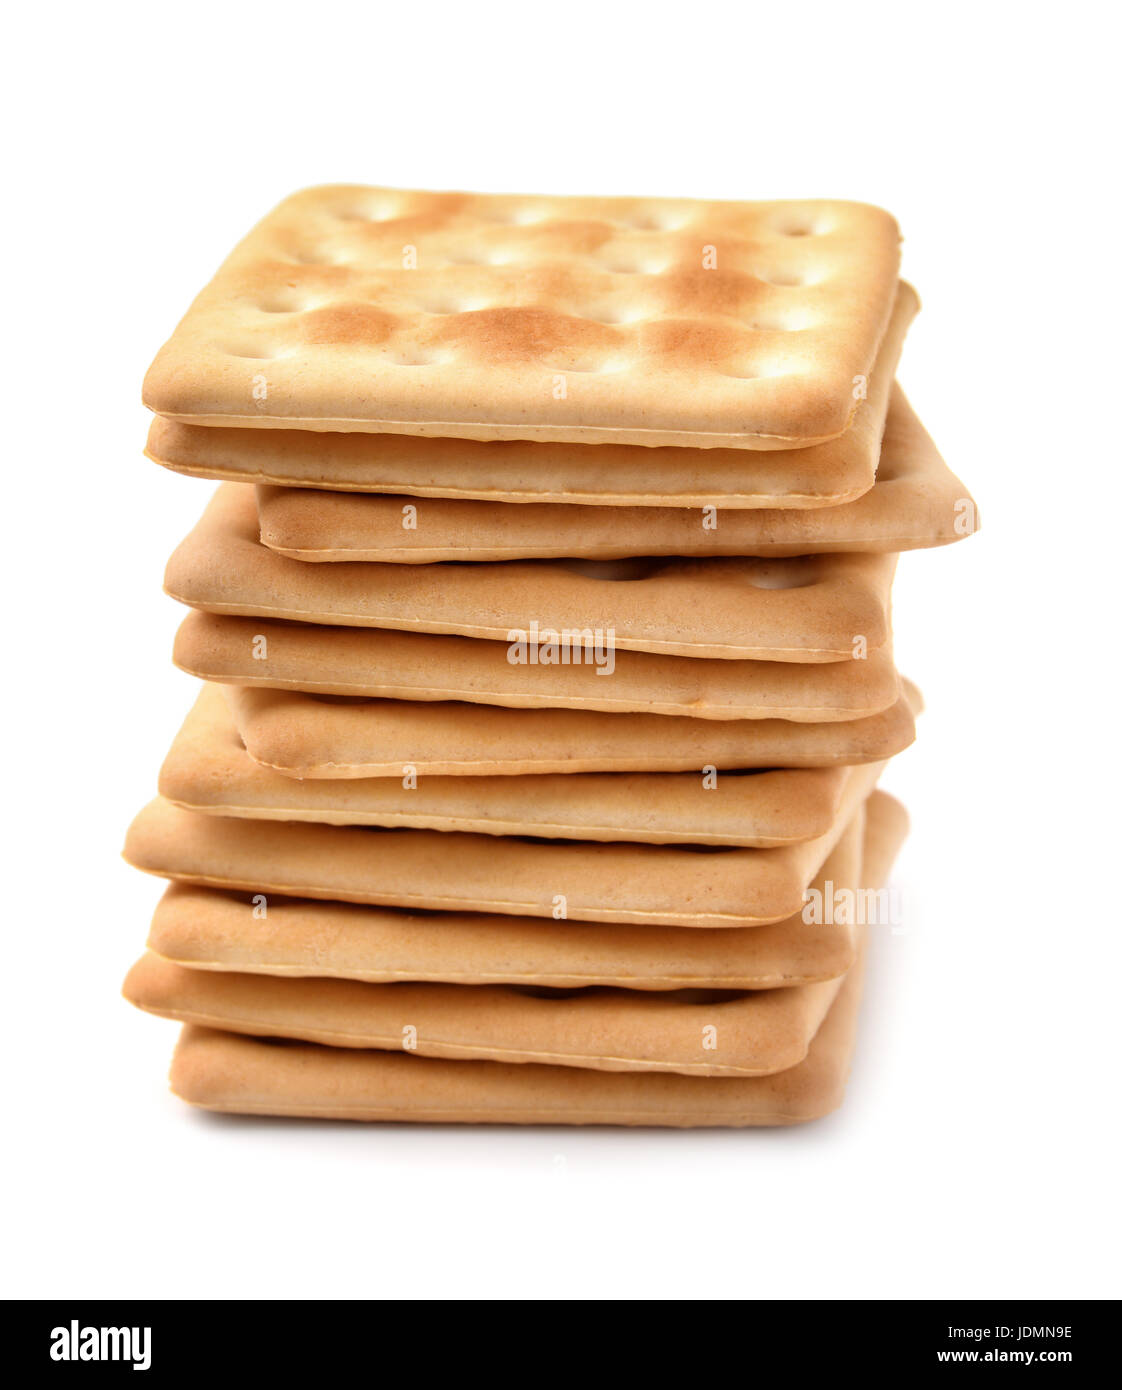 Stack of soda crackers isolated on white Stock Photo